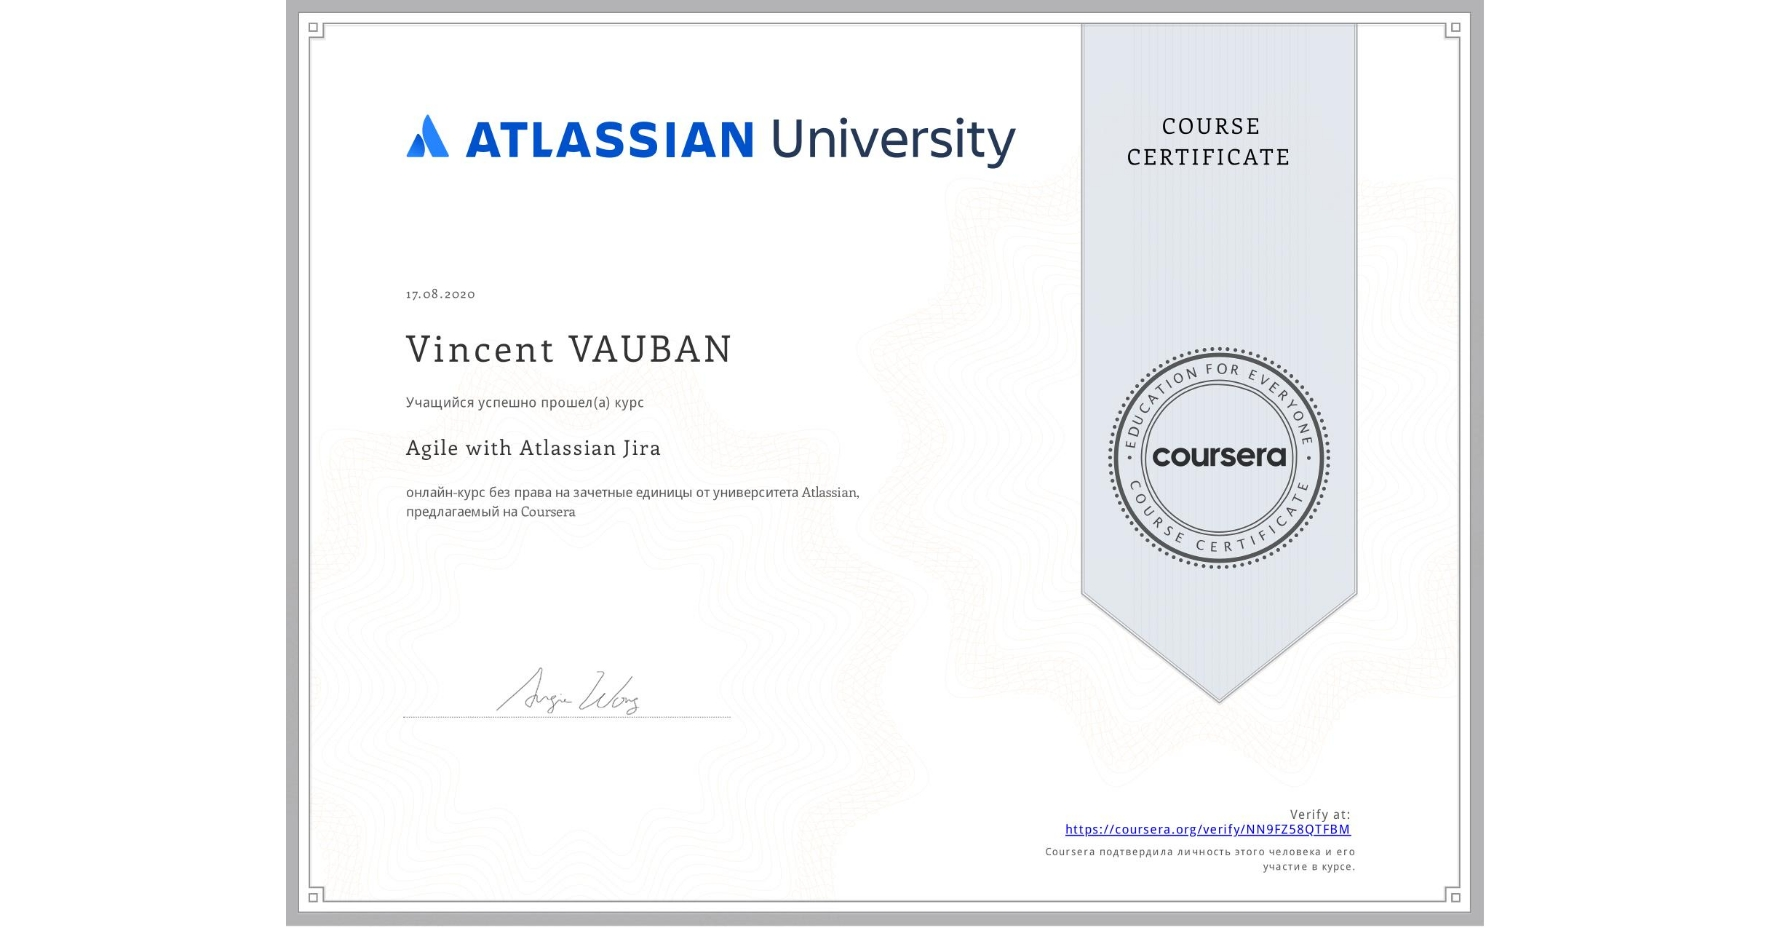 View certificate for Vincent VAUBAN, Agile with Atlassian Jira, an online non-credit course authorized by Atlassian and offered through Coursera